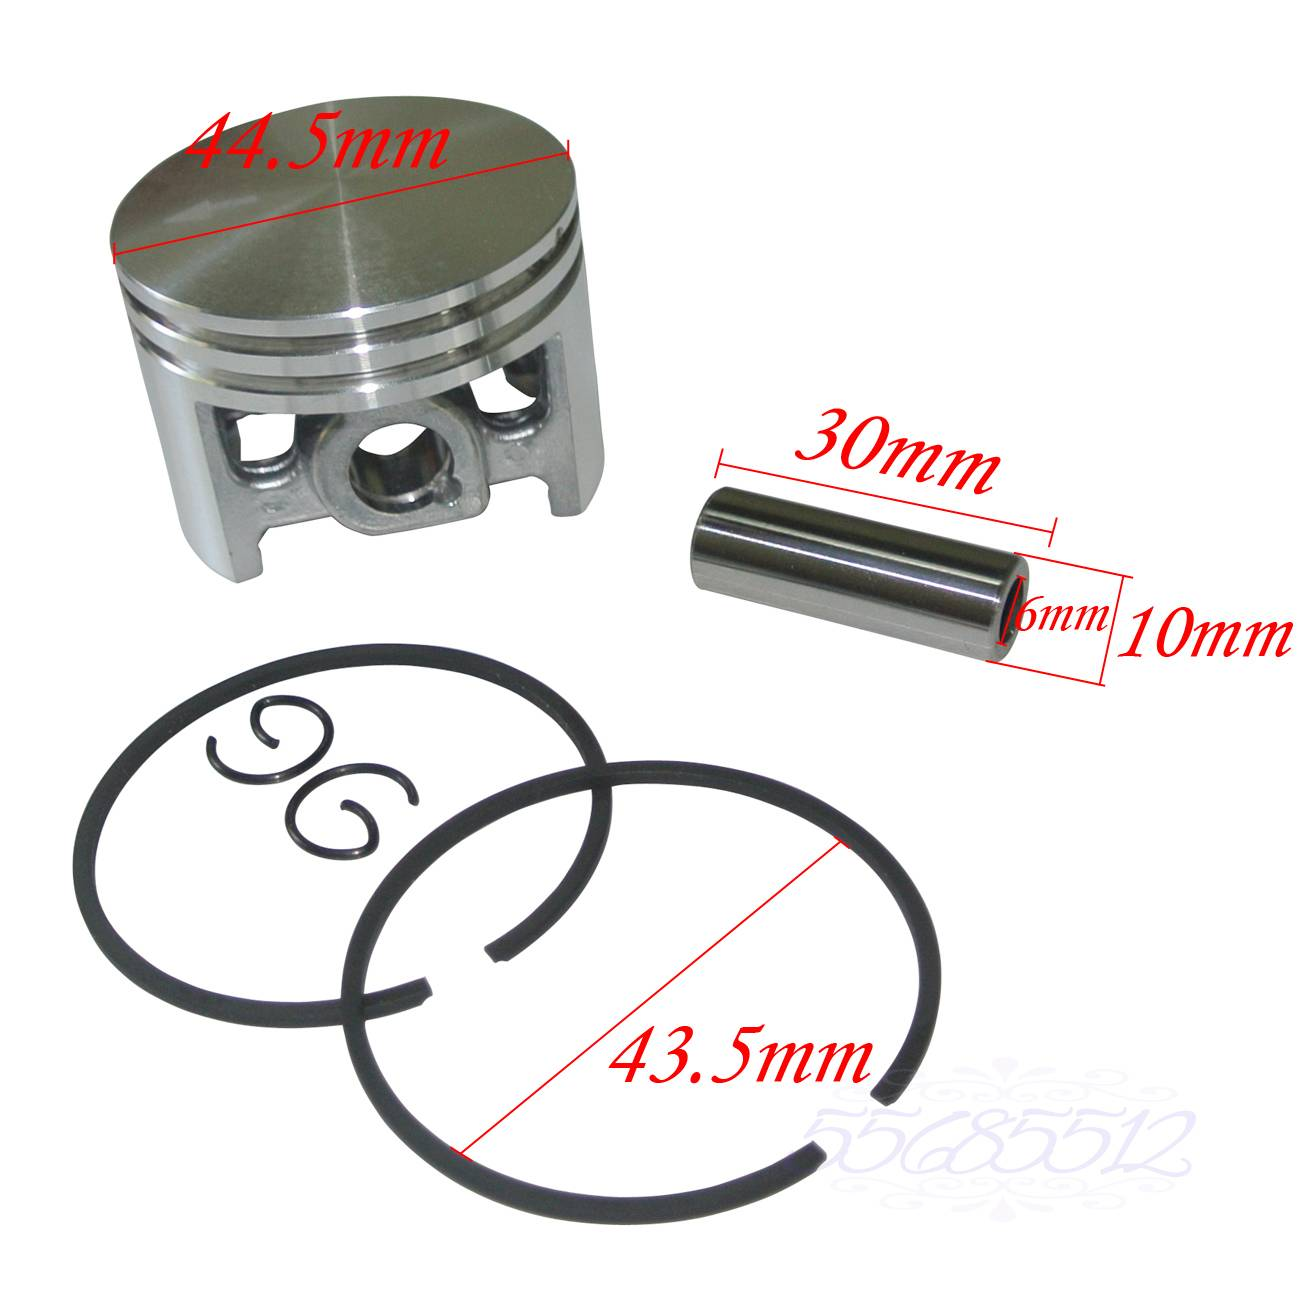 44mm Piston ve Halkalar Kiti Fit Stihl 026 MS260 MS260C 026 PRO Testereler 3